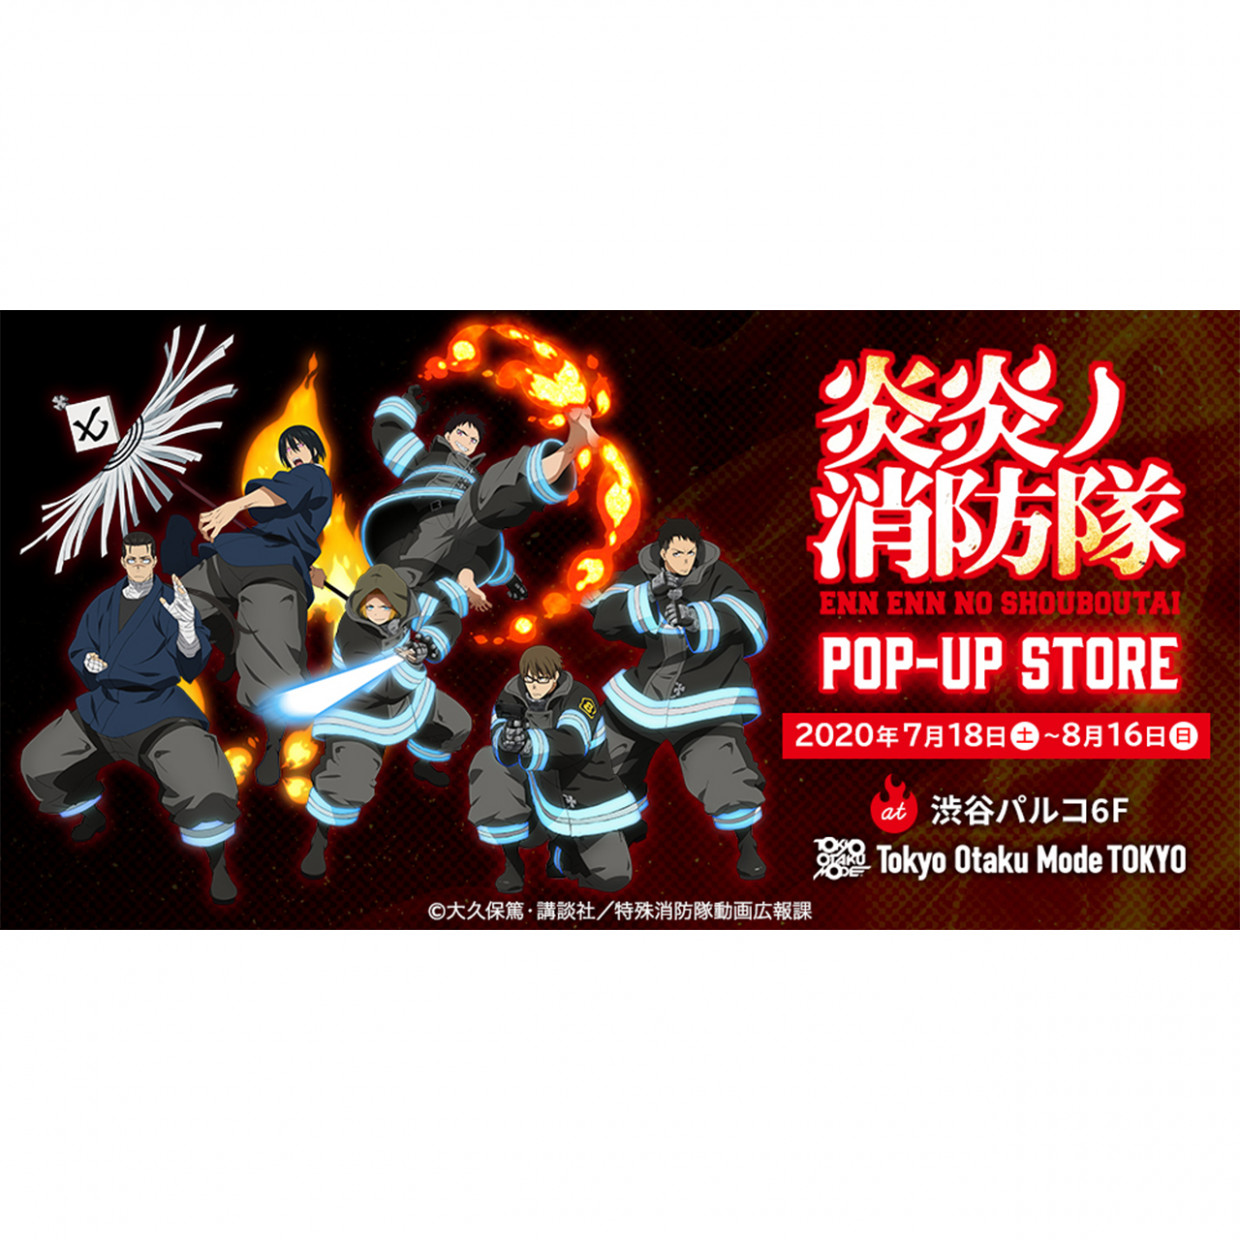 """Special fireman fighting against flame arrives at the spot! """"Flame flame no fire brigade"""" popup store"""